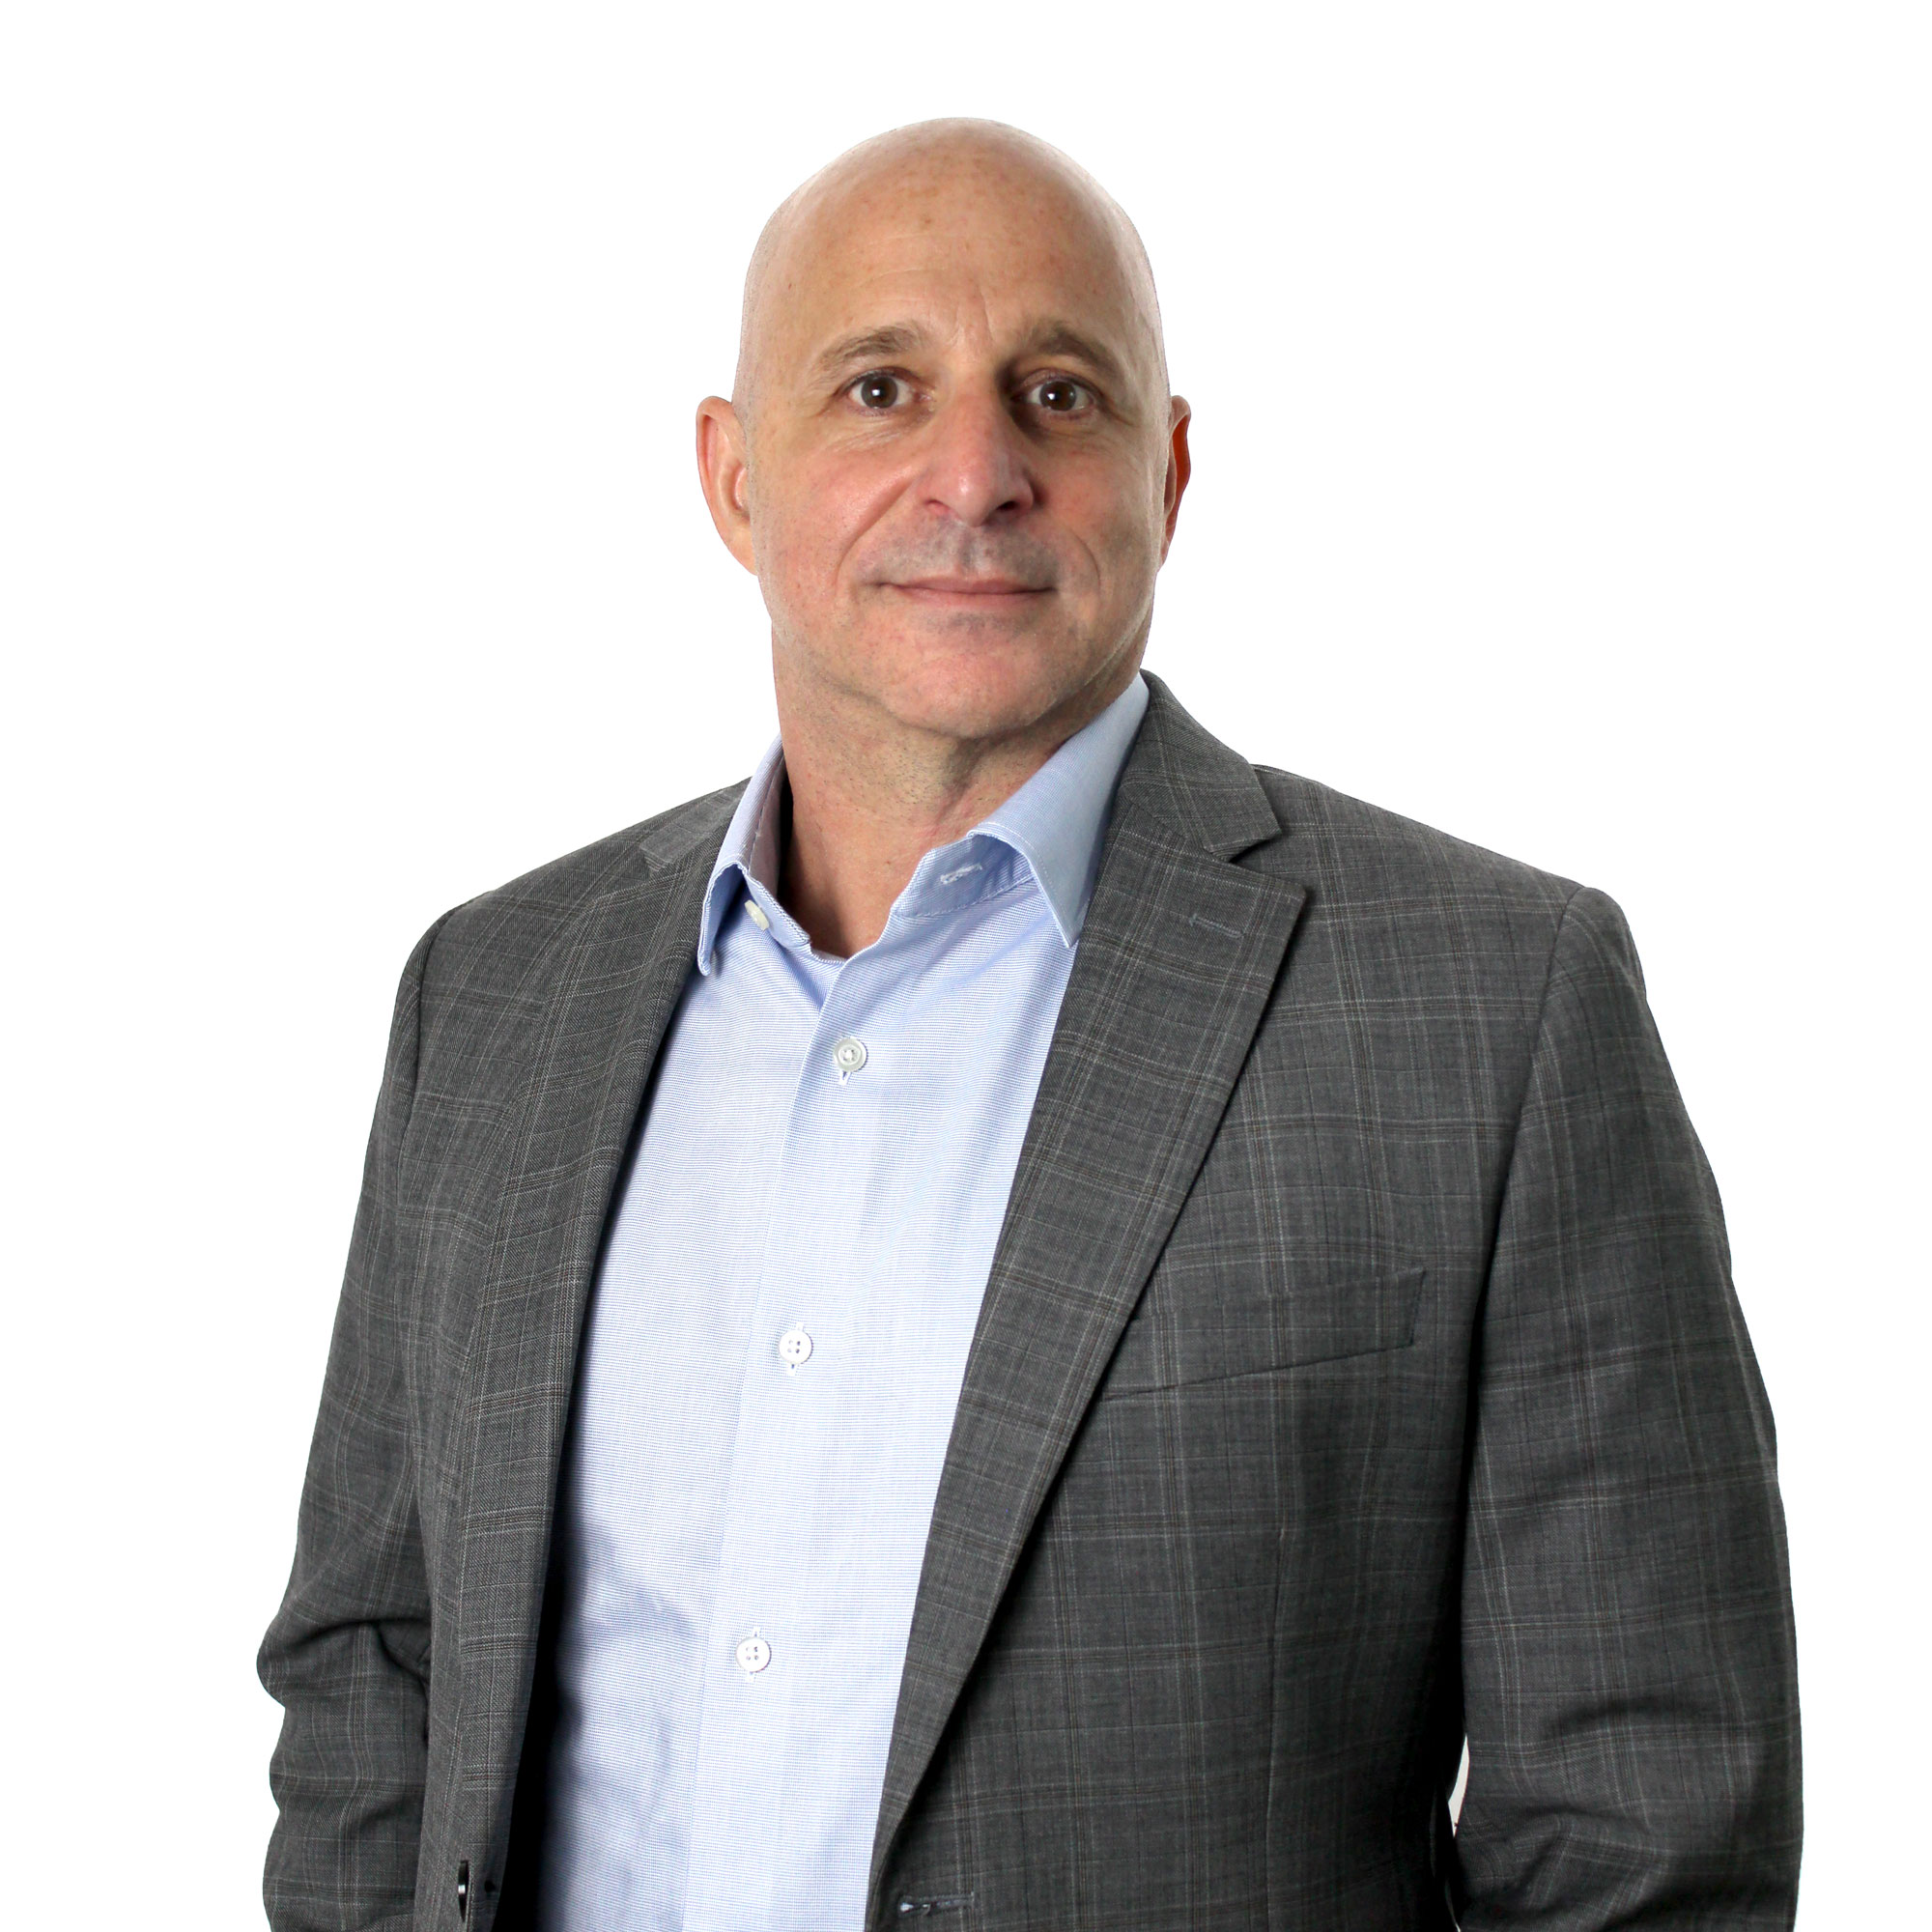 Mr. Norin, CEO of The Agora Companies, began his career in public accounting 30 years ago. As The Agora Companies was one of his first clients, he has been very involved in its success since the beginning of his career, and has watched Agora grow from revenues of less than $10 million to become a company that grosses over $1 billion annually. Mr. Norin is responsible for the day-to-day management of the company's U.S. operations, and has helped lead Agora's expansion efforts into England, France, Germany, Australia, South Africa, Brazil, as well as others. Under his leadership, Agora began their use of the internet as a tool for daily communications with newsletter subscribers as well as a sales vehicle. Agora now generates the majority of its revenue through e-commerce sales.